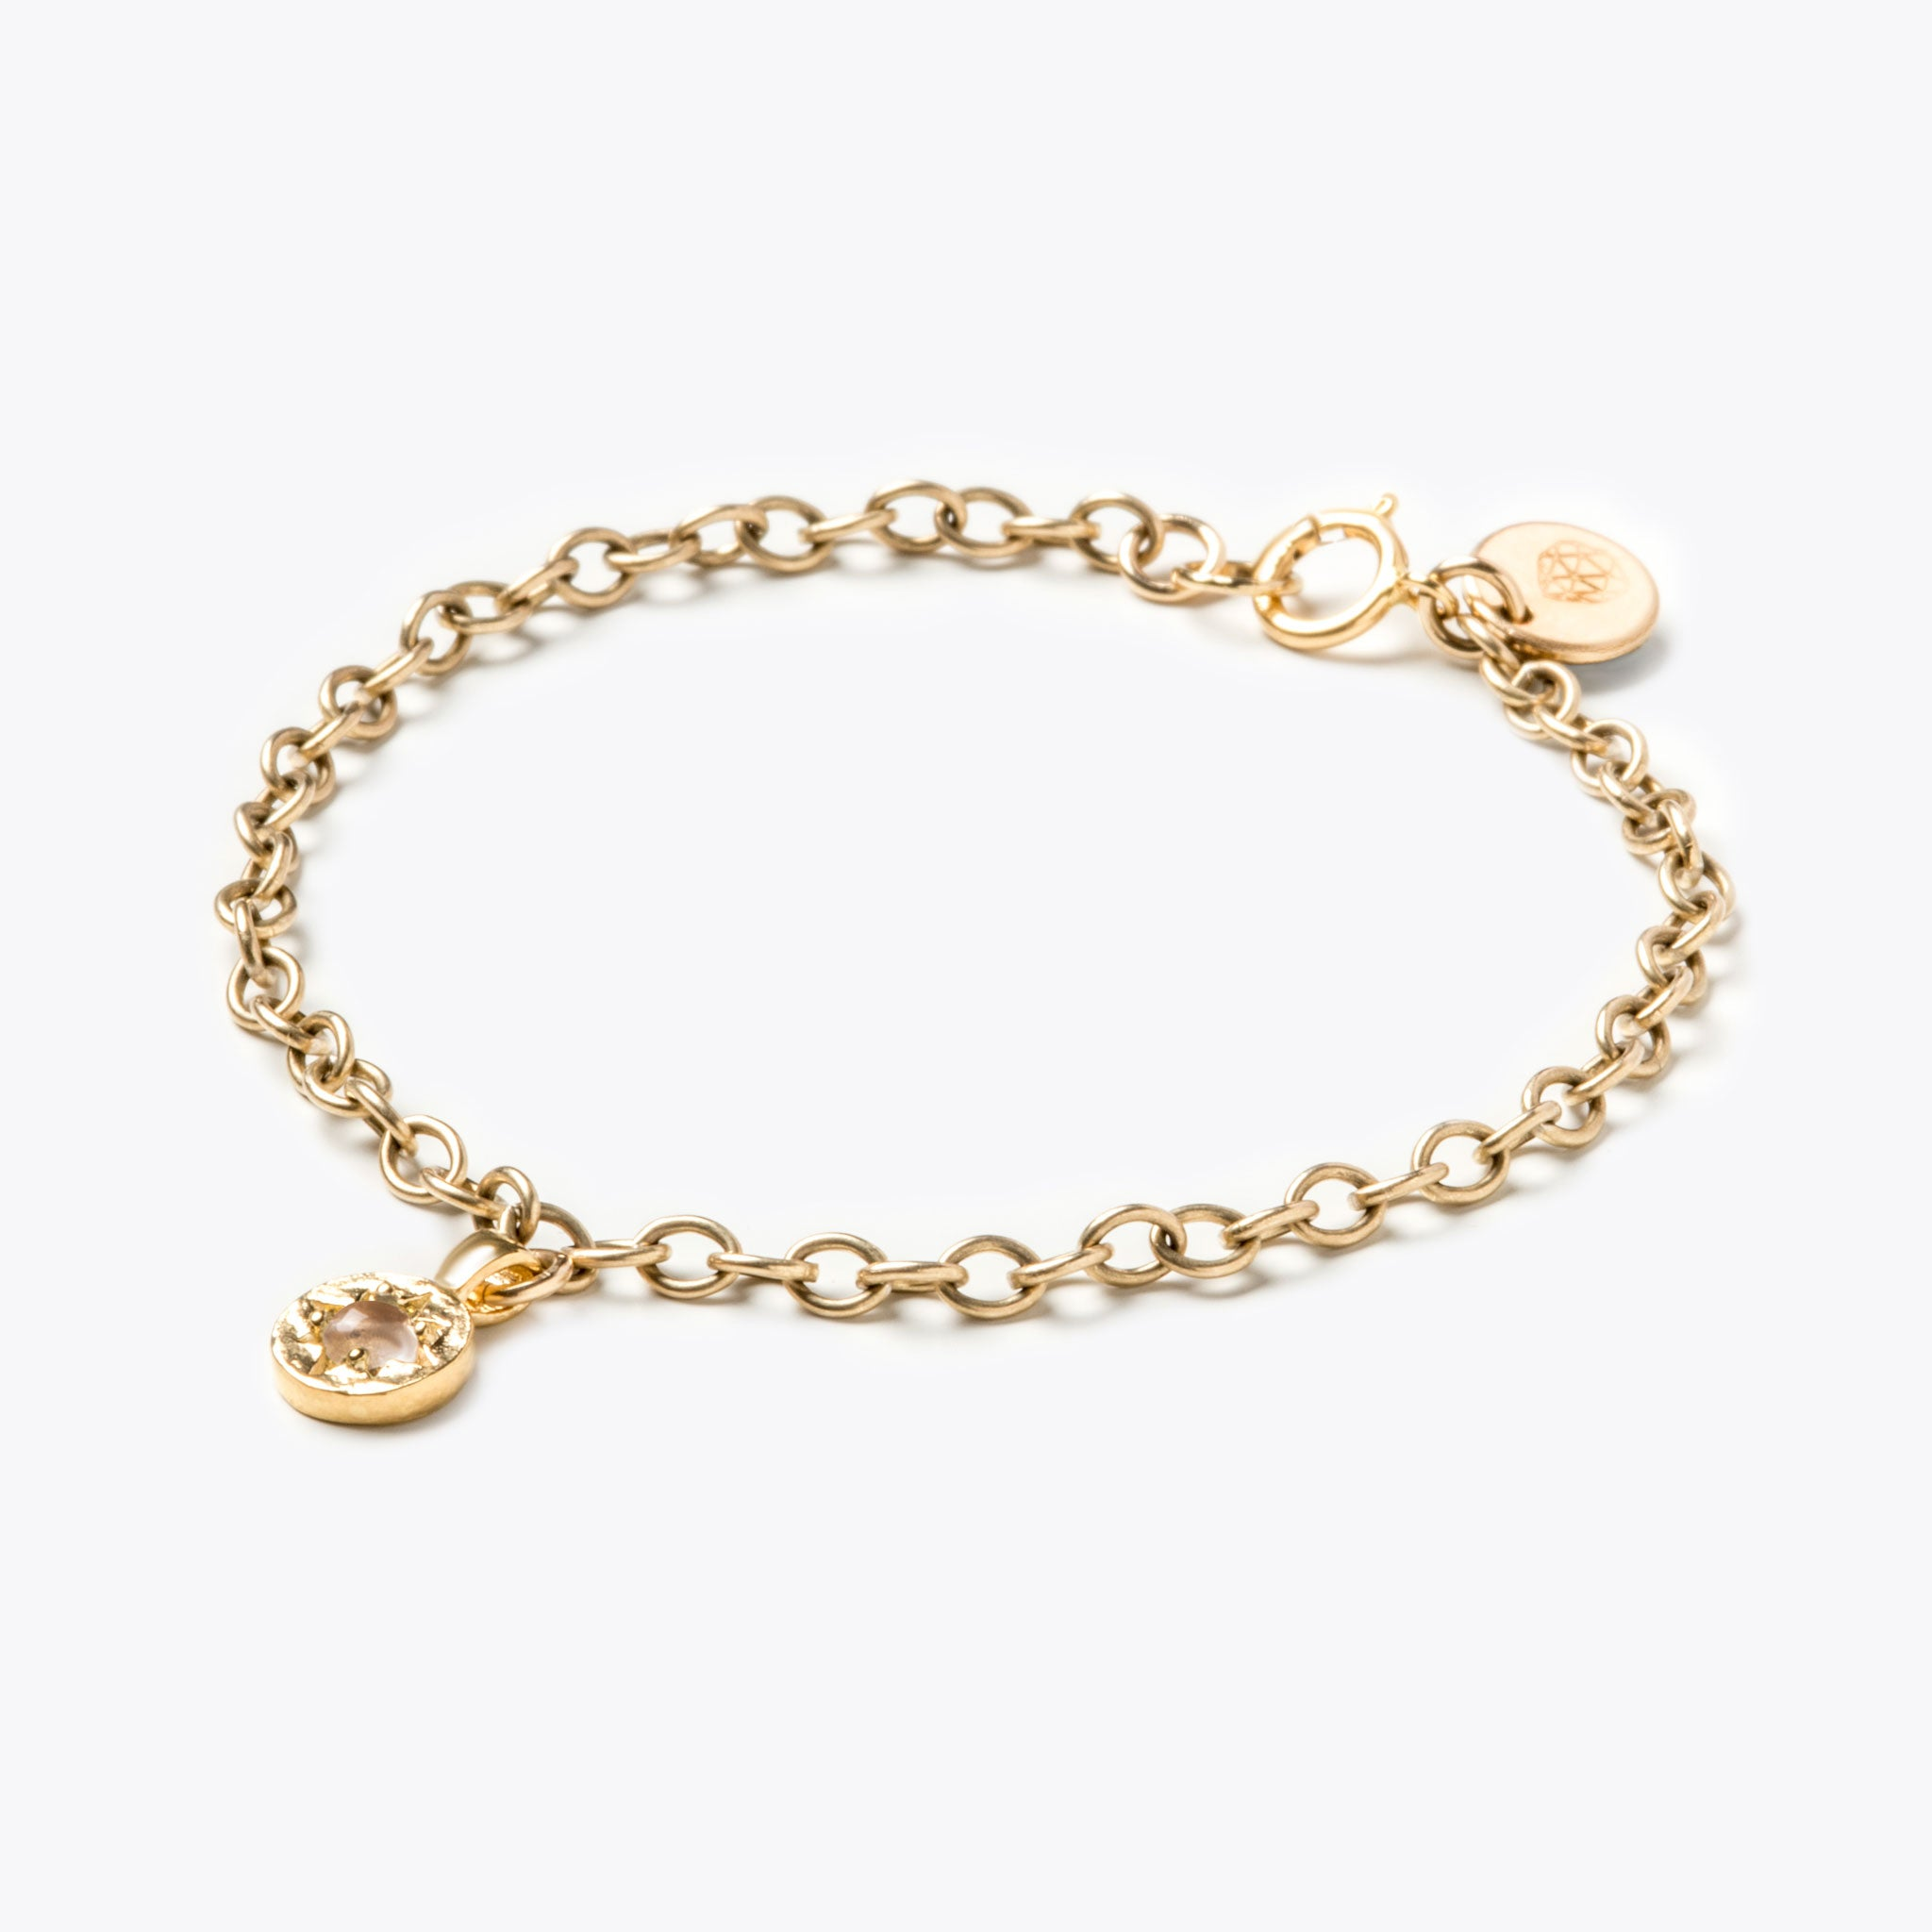 Wanderlust Life April birthstone 14k gold fill charm bracelet featuring semi precious clear quartz gemstone symbolising the month of April. April birthstone gold bracelet available in small & medium adjustable gold chain. Wanderlust Life handmade jewellery made in Devon, Uk.